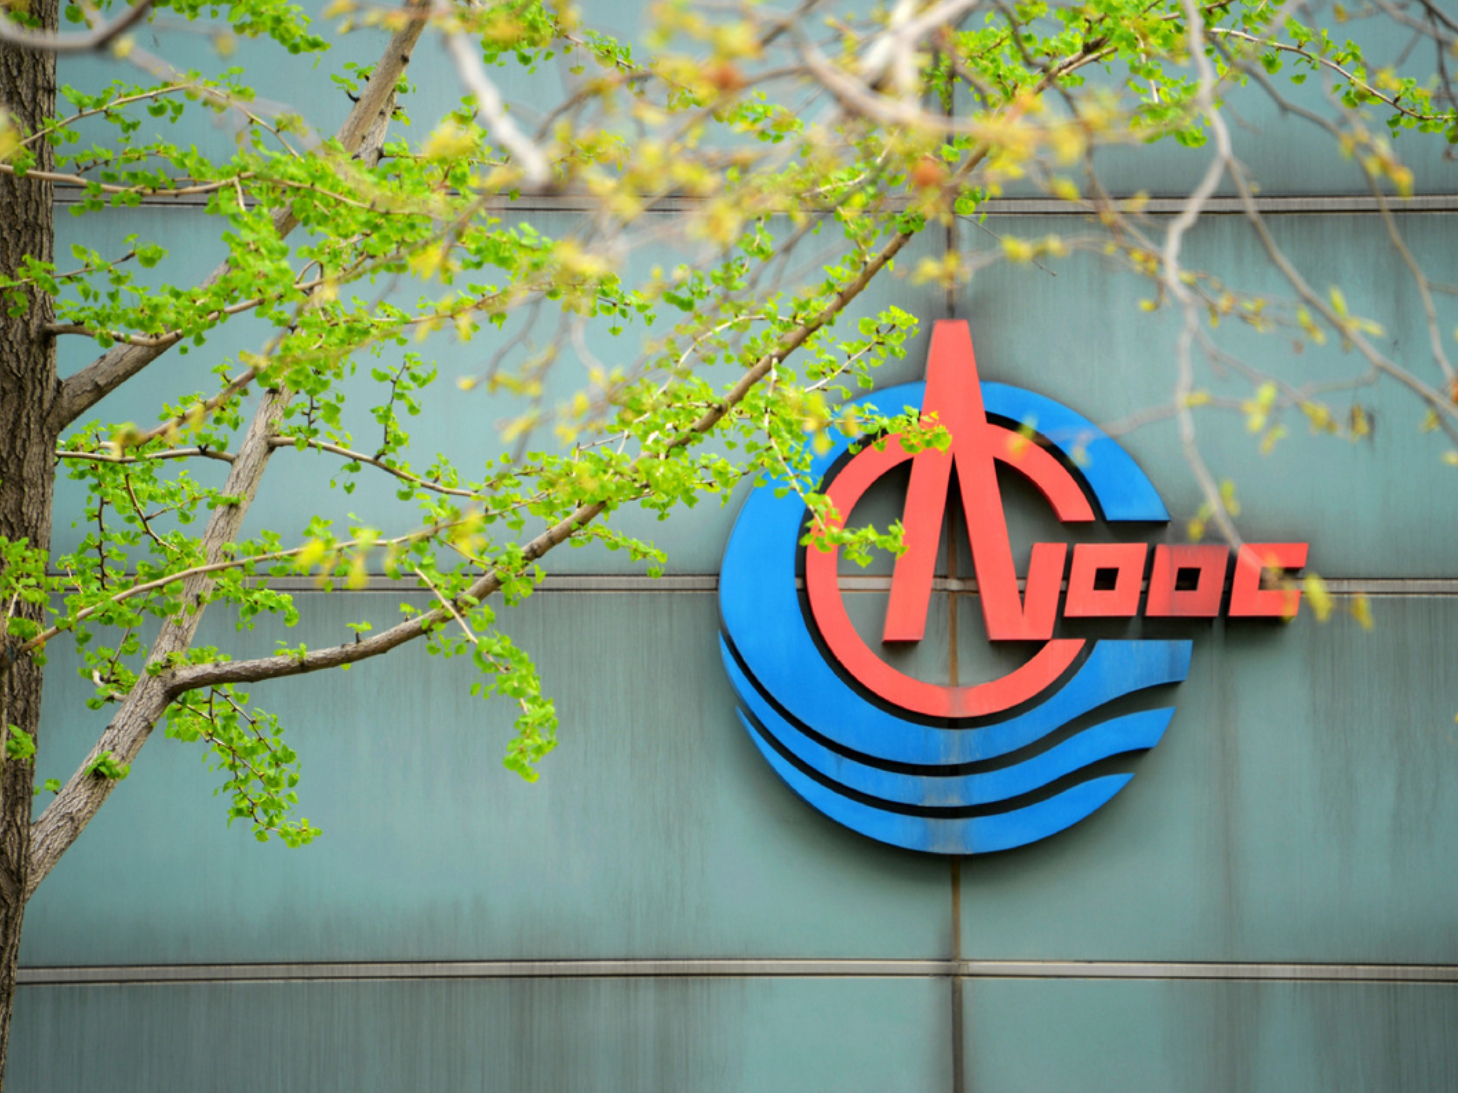 China National Offshore Oil gross revenue tops 750b yuan